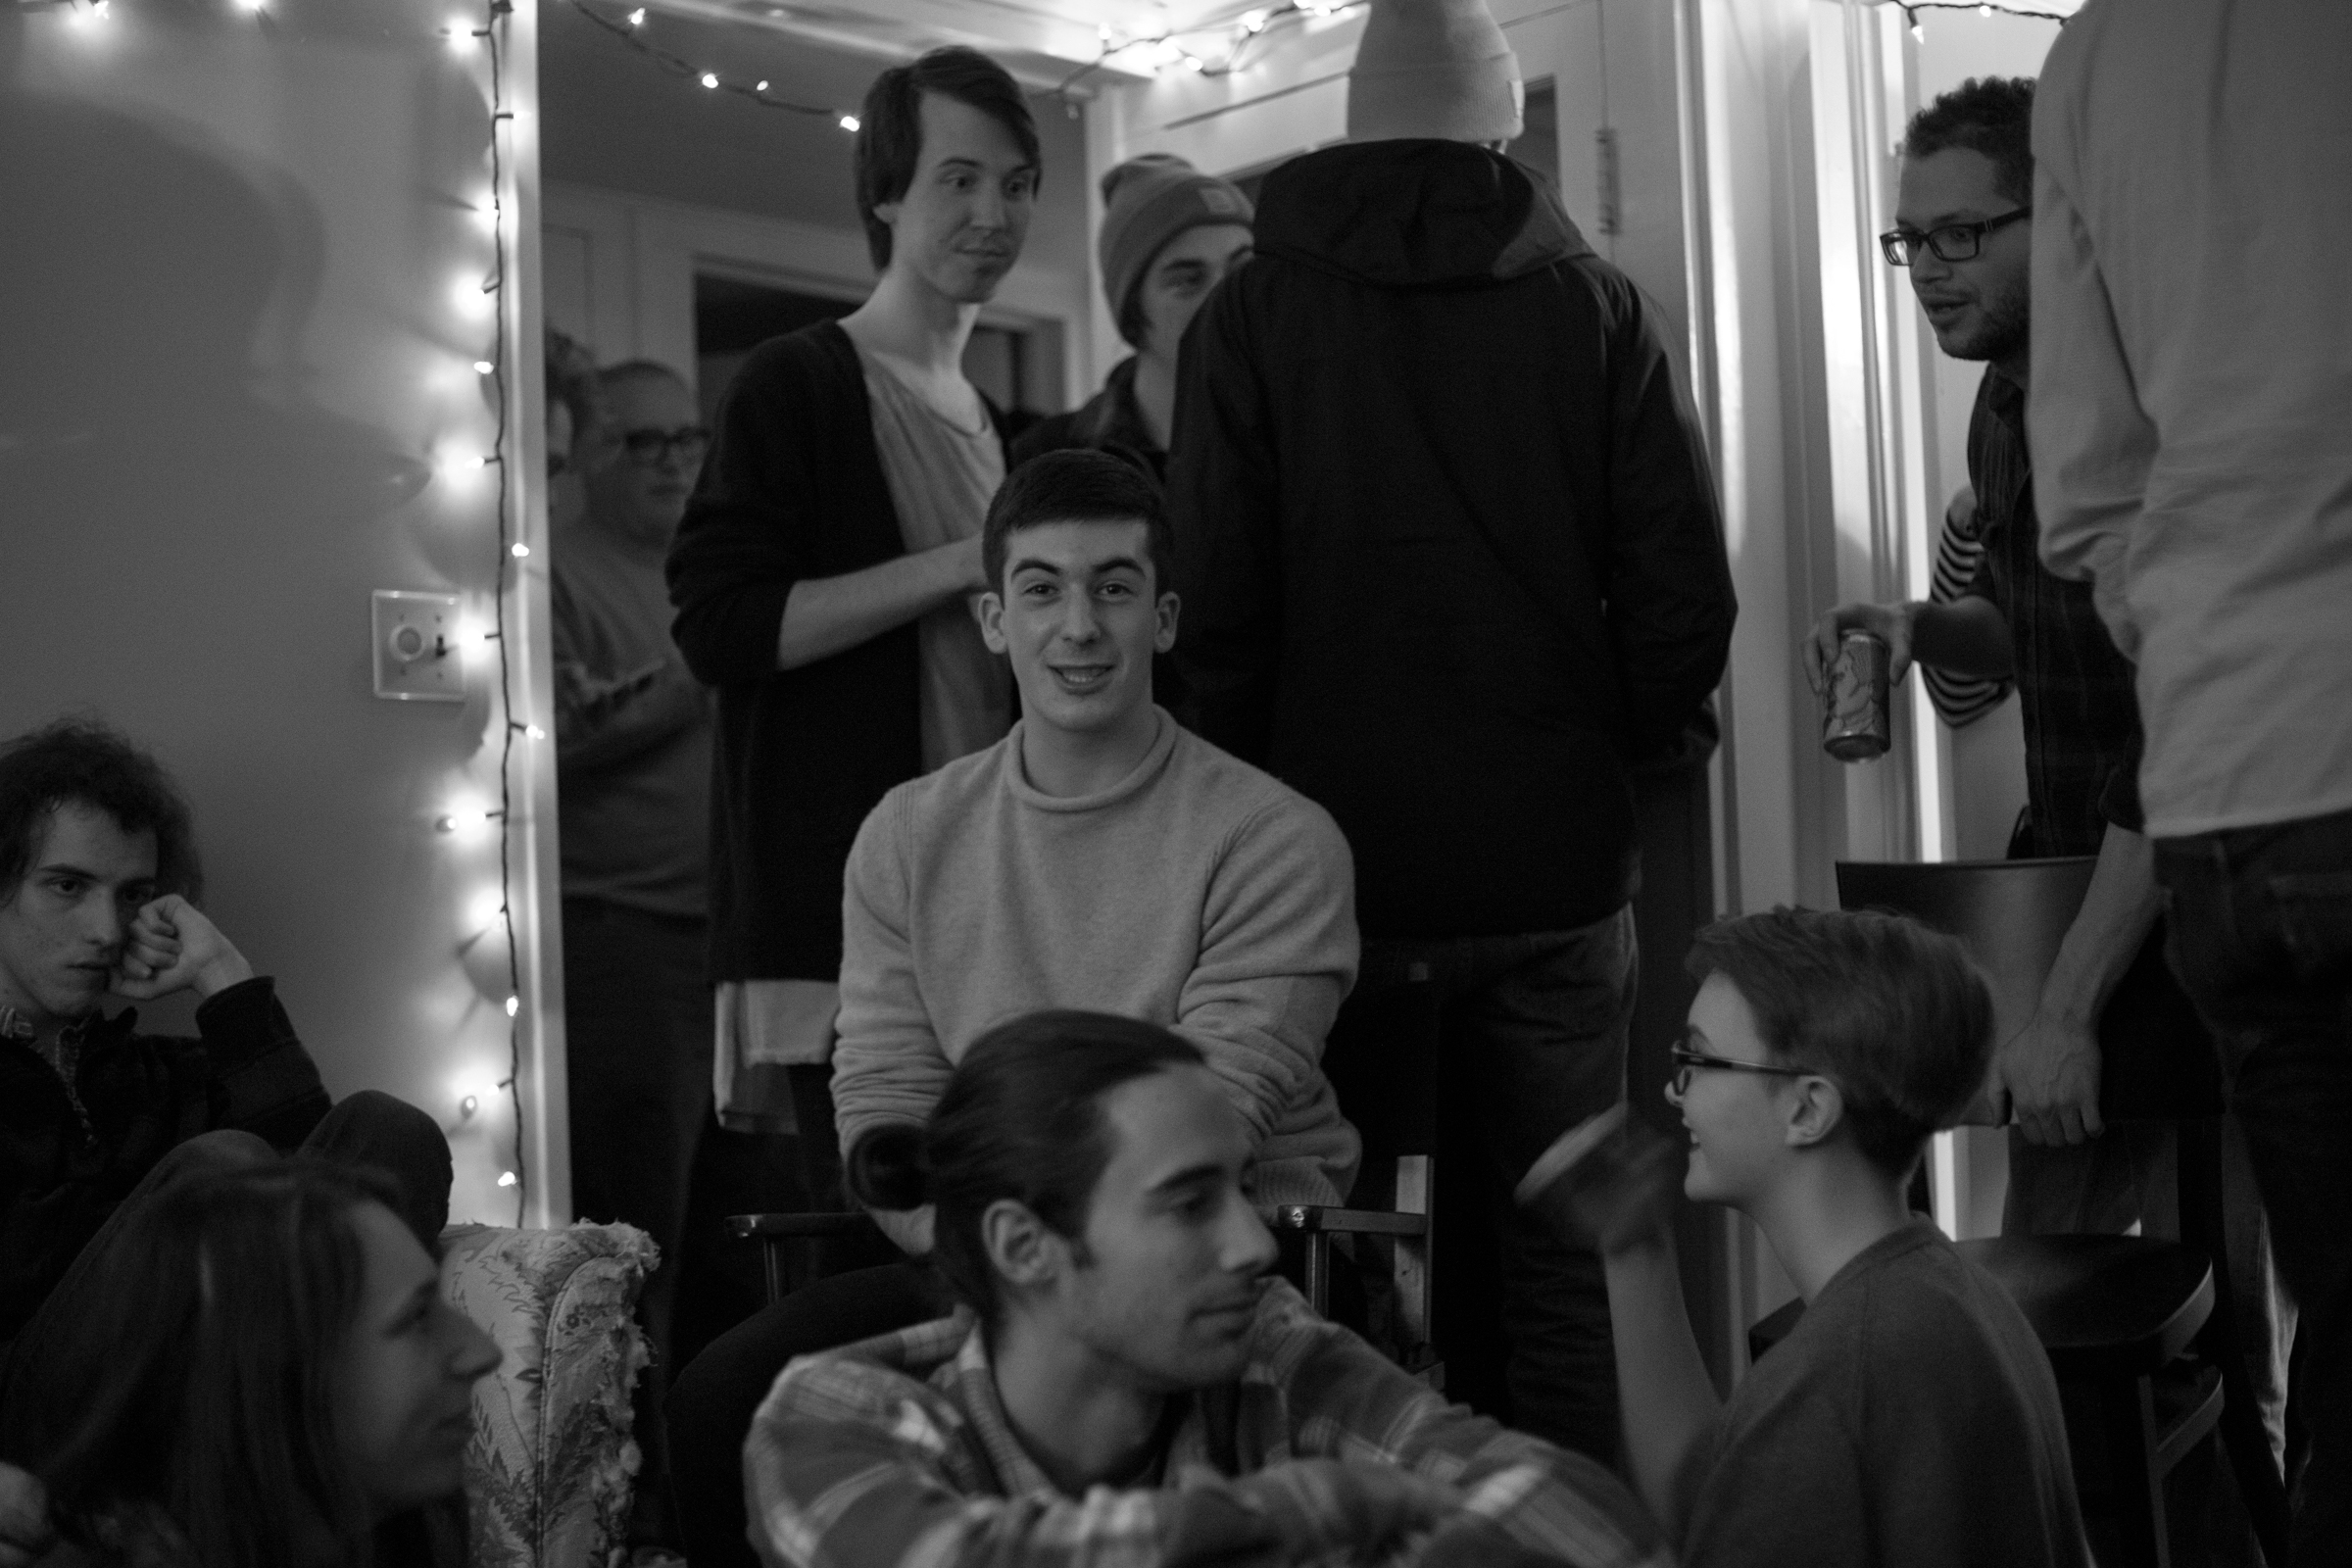 Lukas Hermann surrounded by other Tweehousers / Unknown photographer